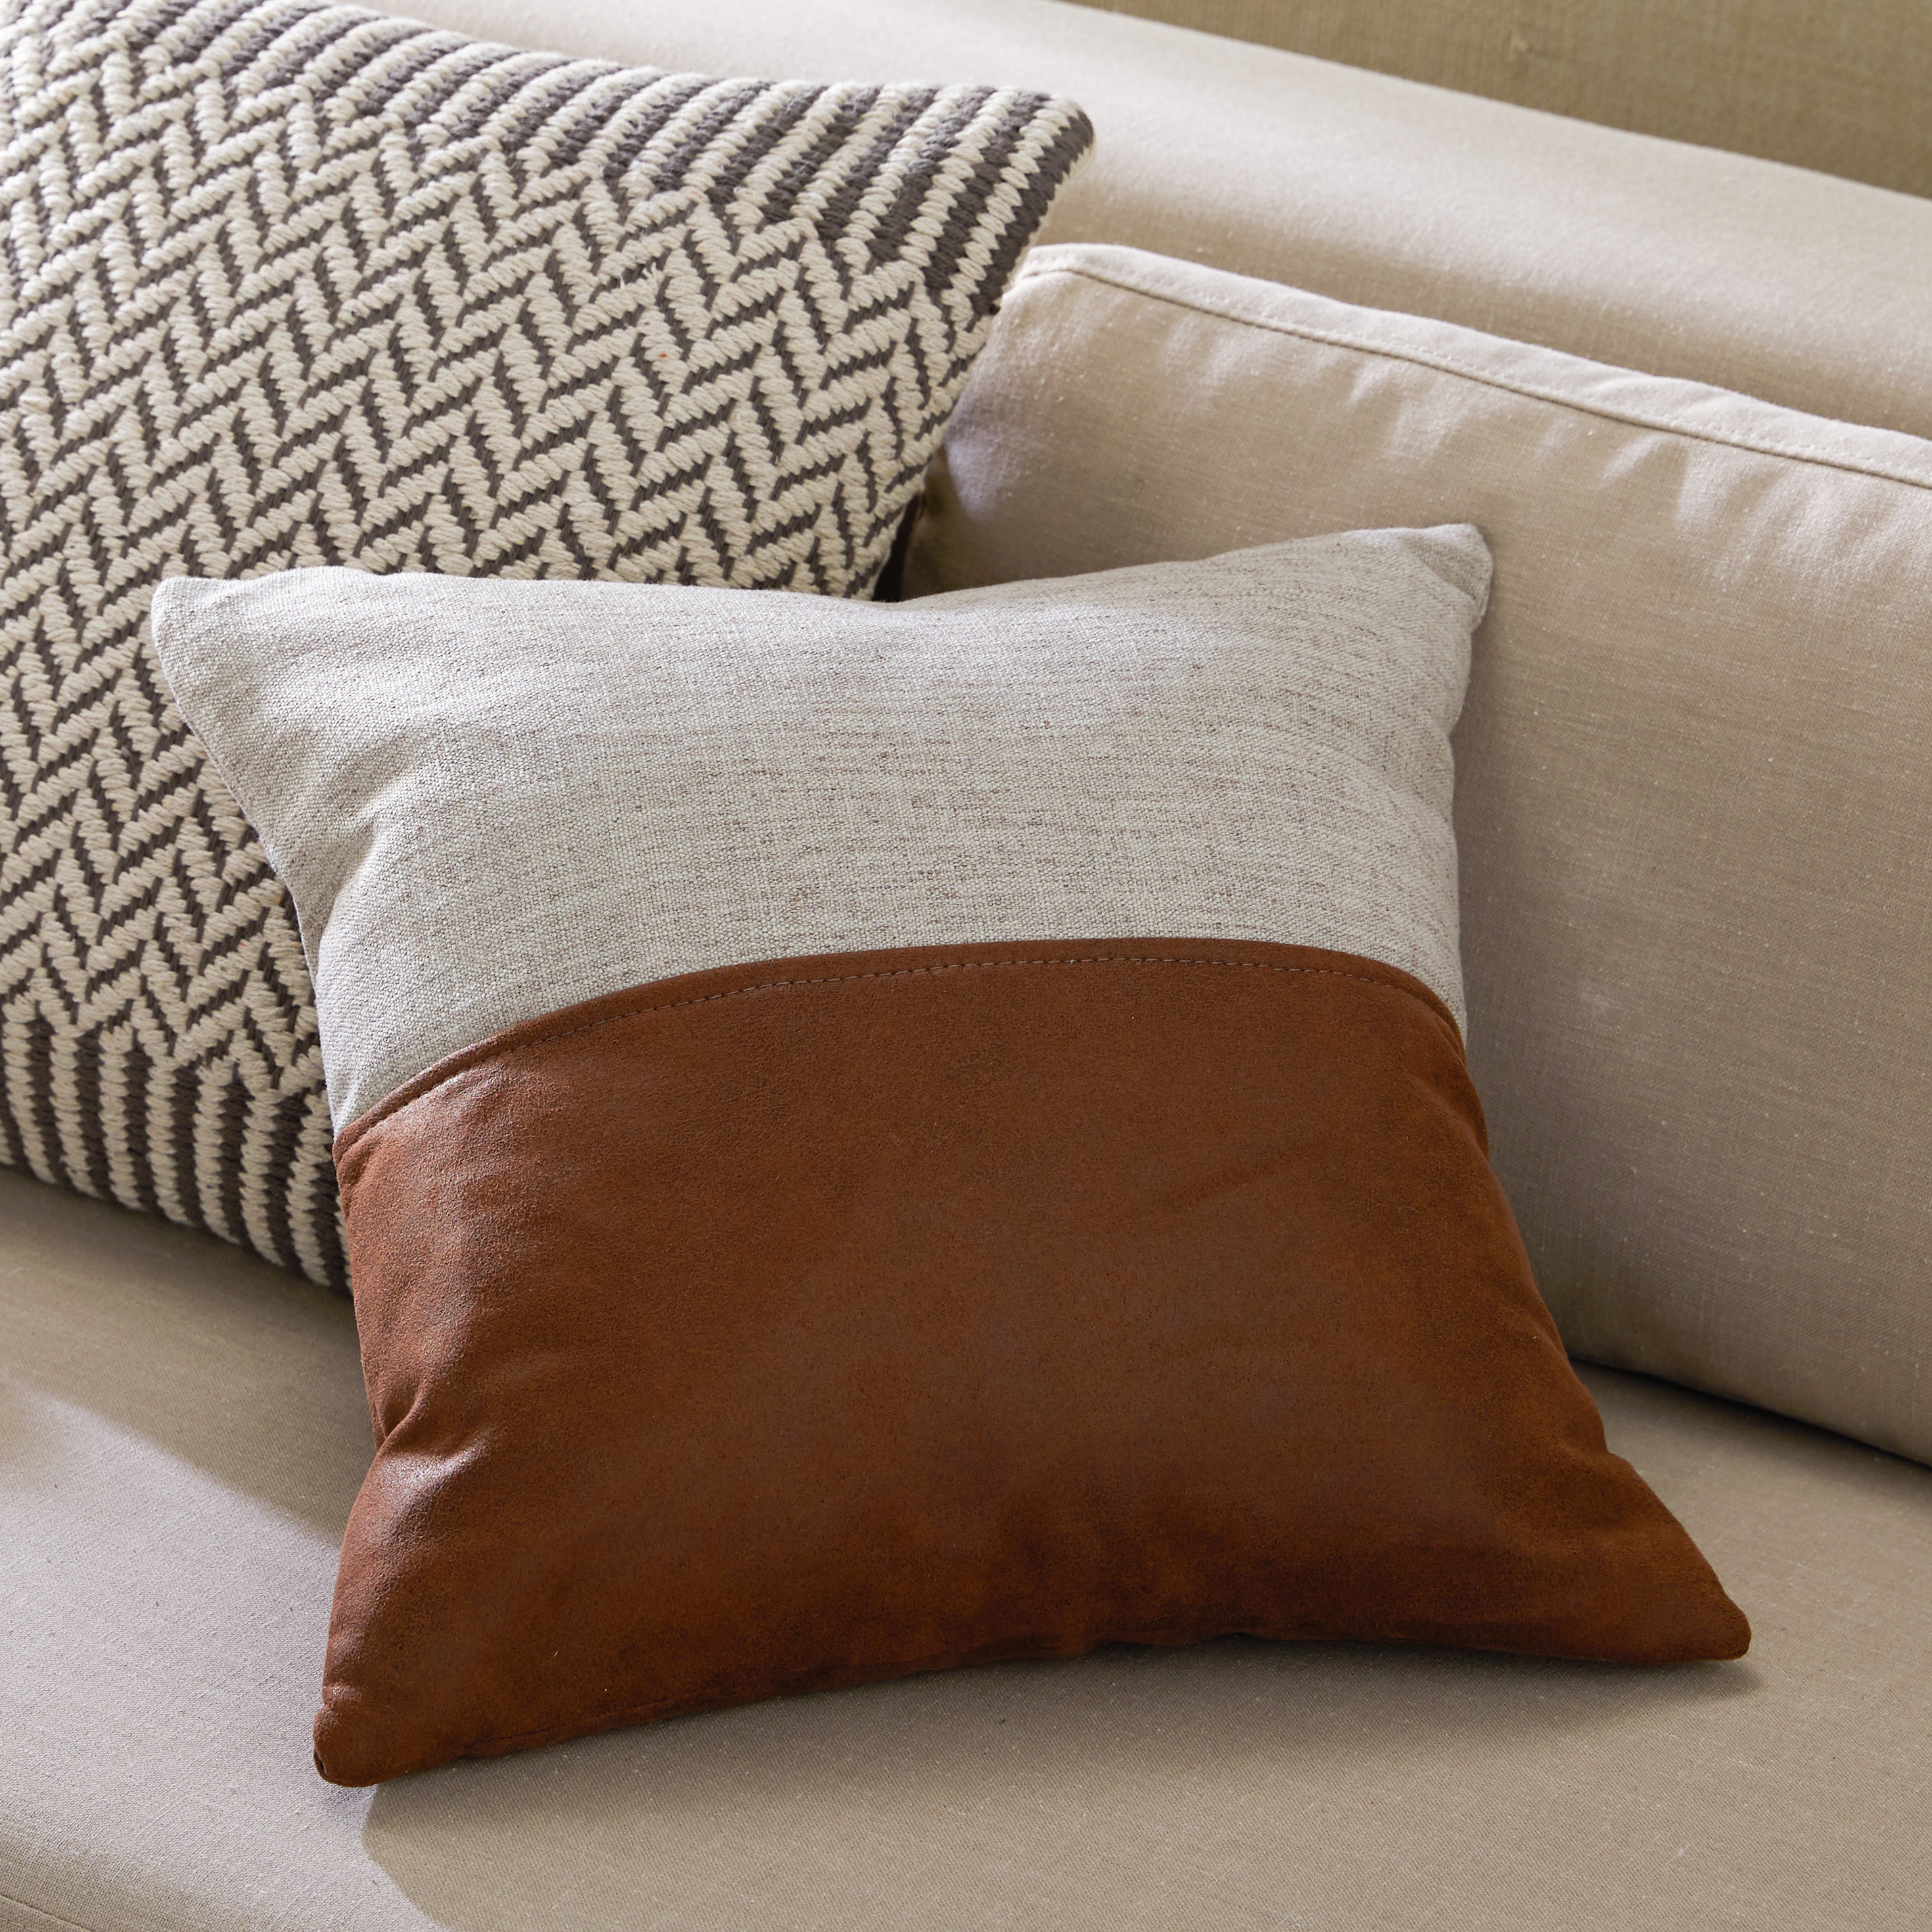 The pillow, which is square and has gray woven fabric on one half, and reddish-brown leather on the other